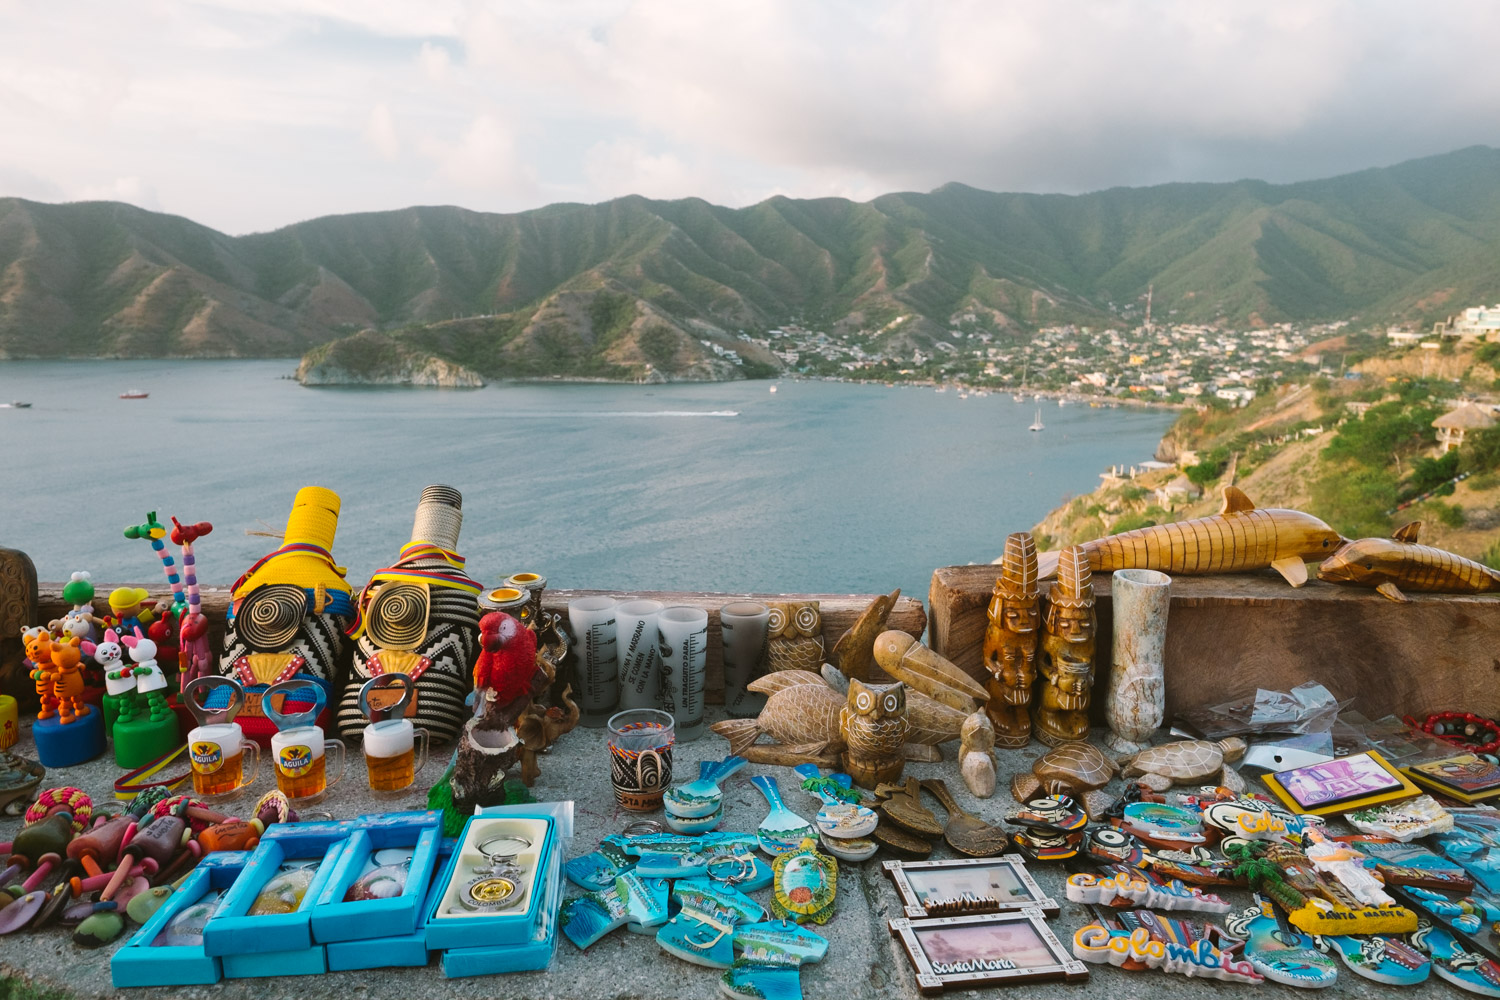 Local handcrafts and the beautiful view of Taganga bay.